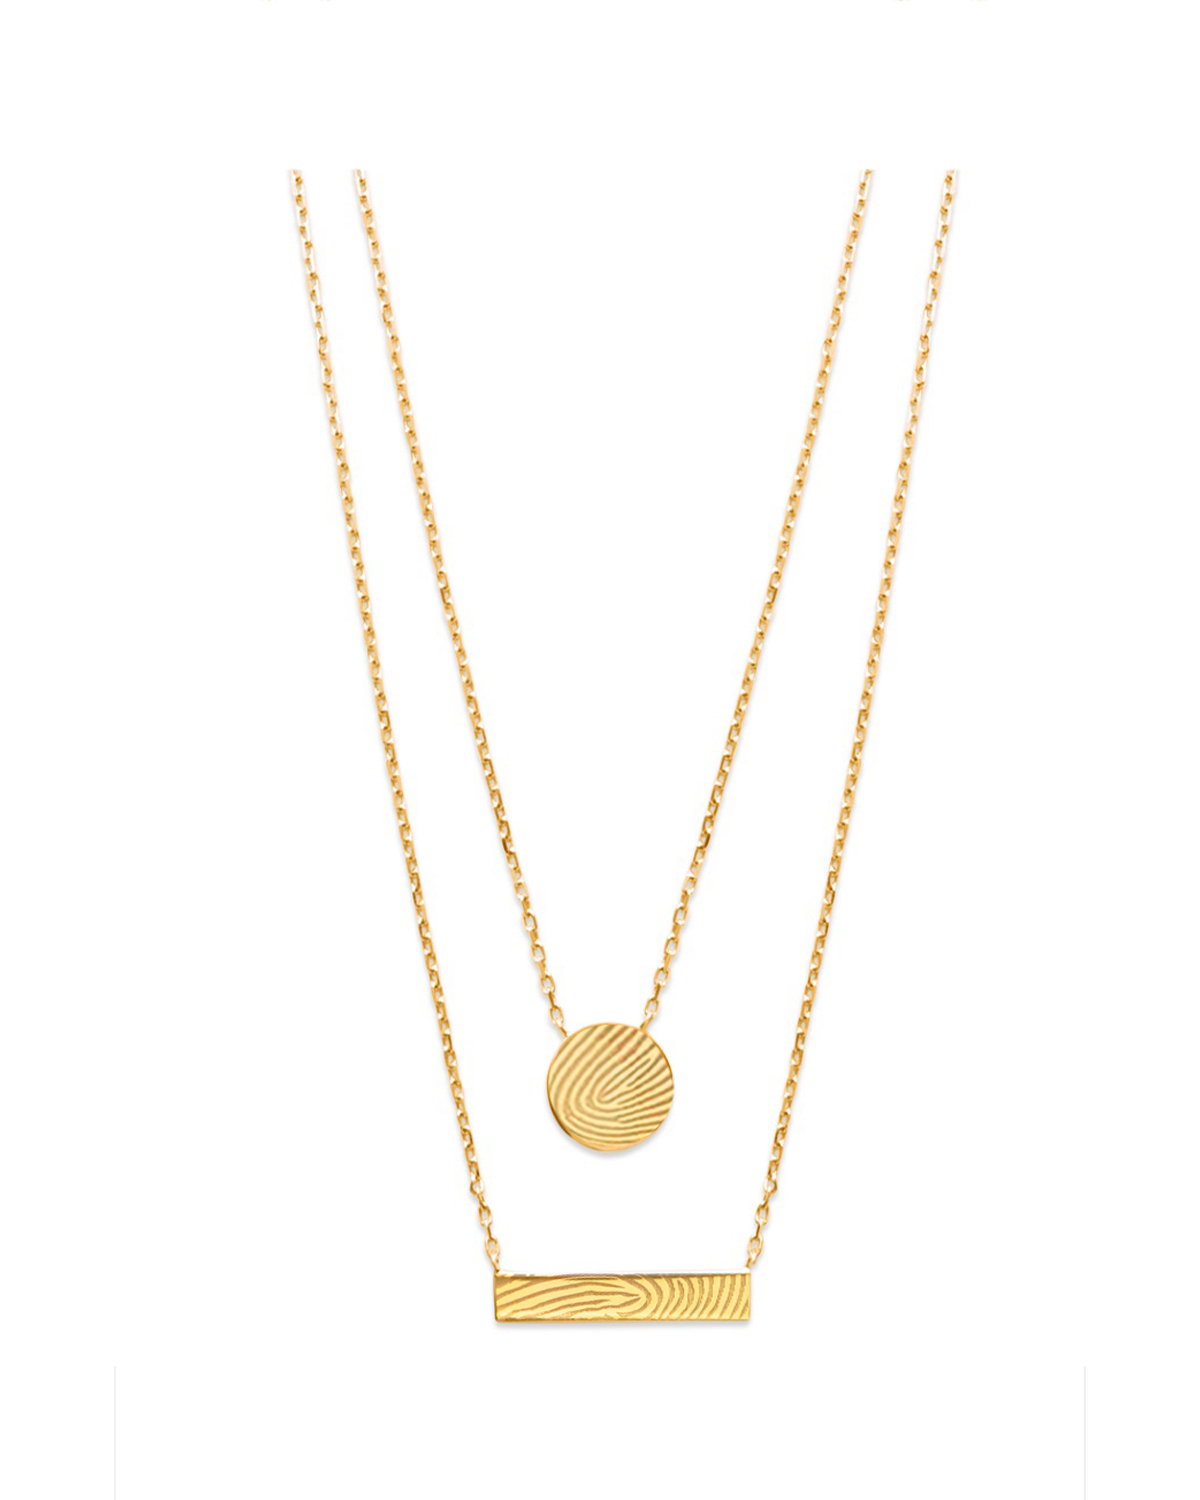 Double Pendant Necklace, Gold-Plated